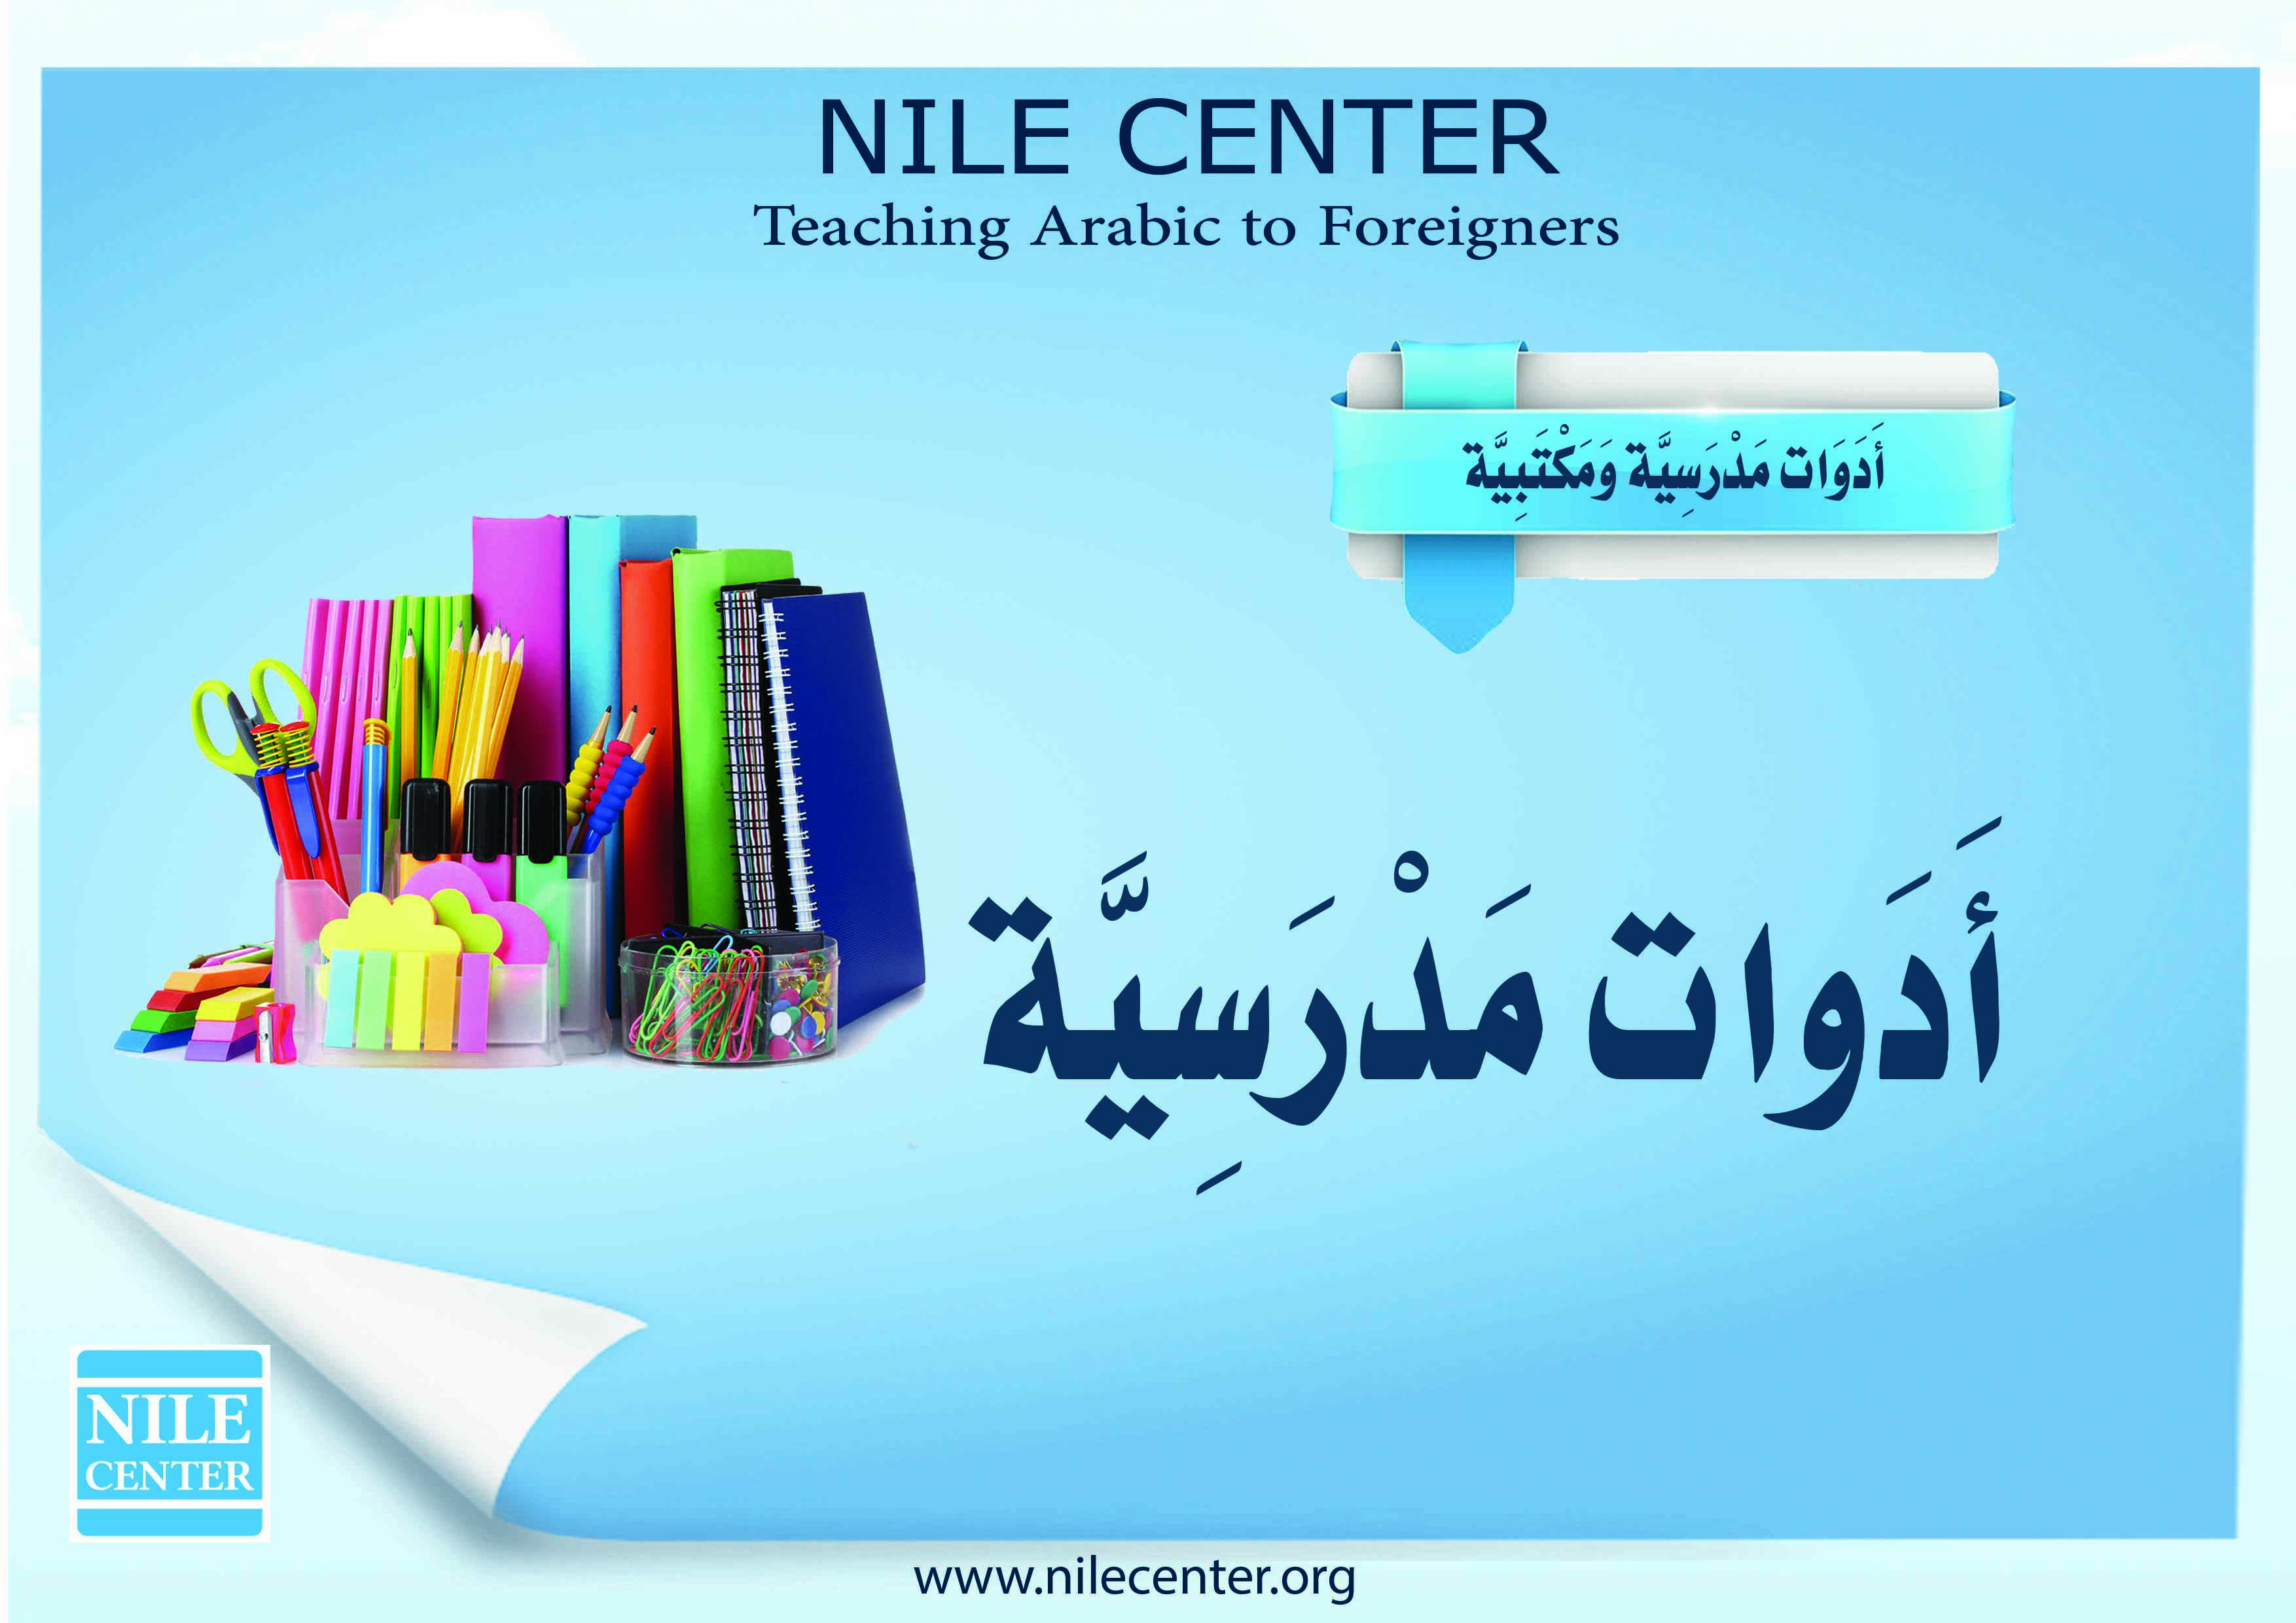 School and Office Tools in Arabic